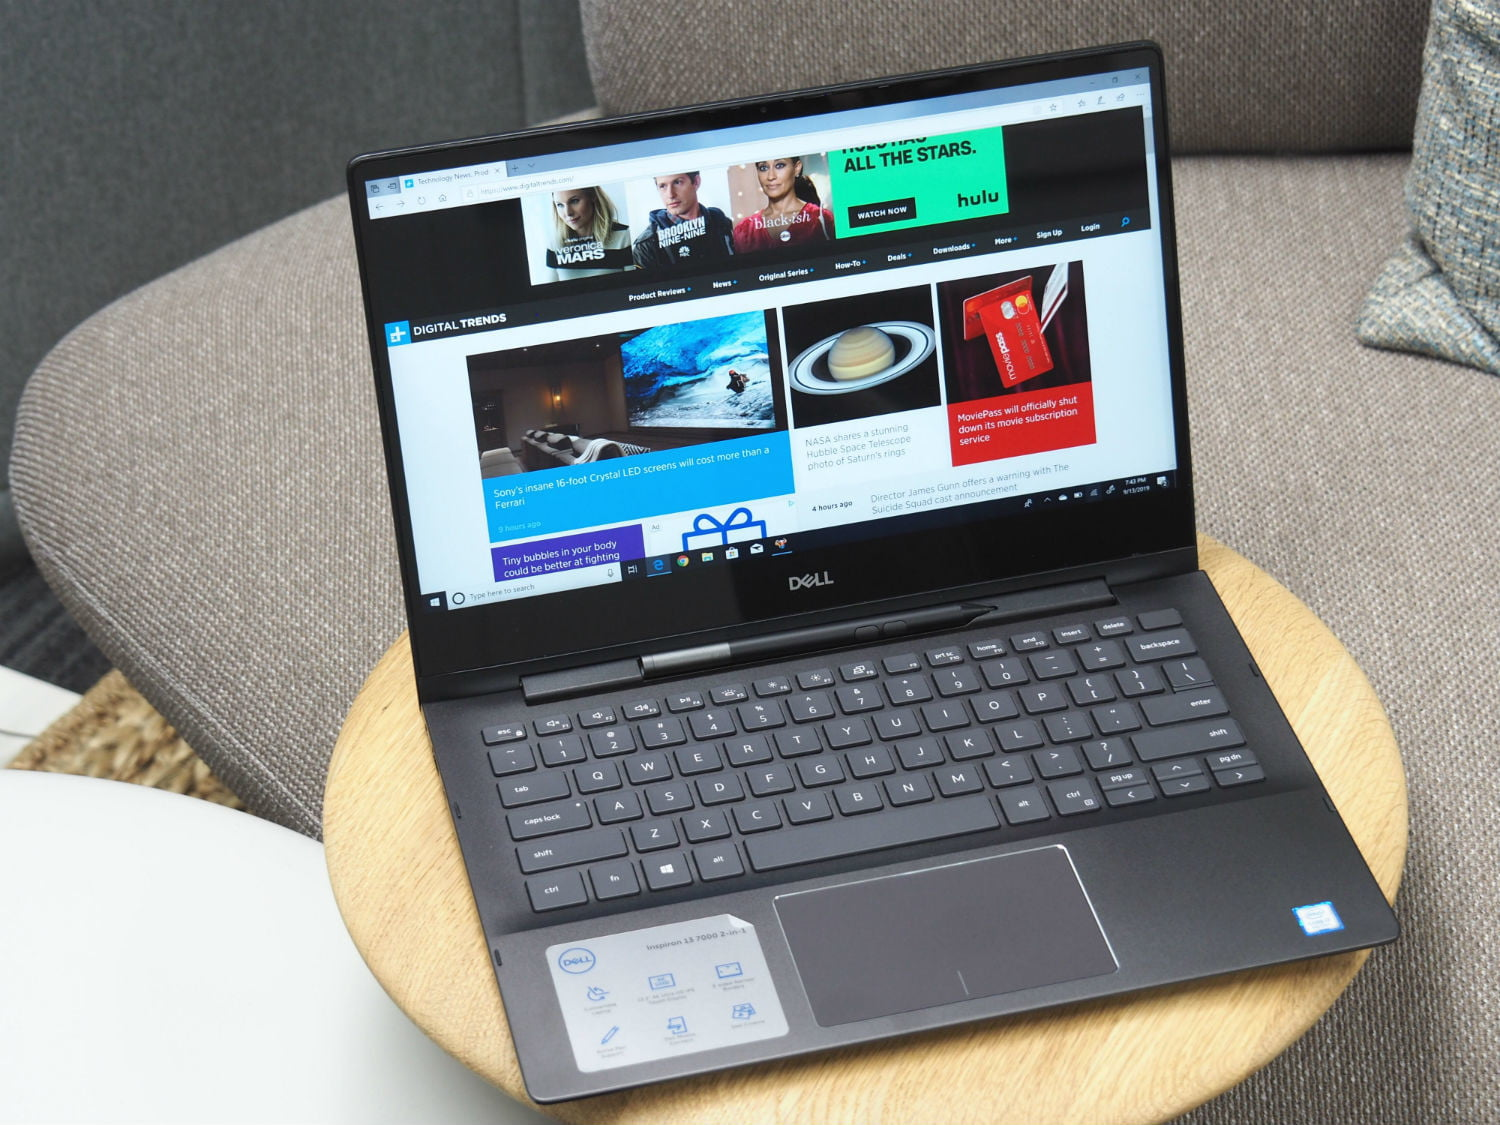 Dell Inspiron 13 7000 2 In 1 Black Edition Review Digital Trends